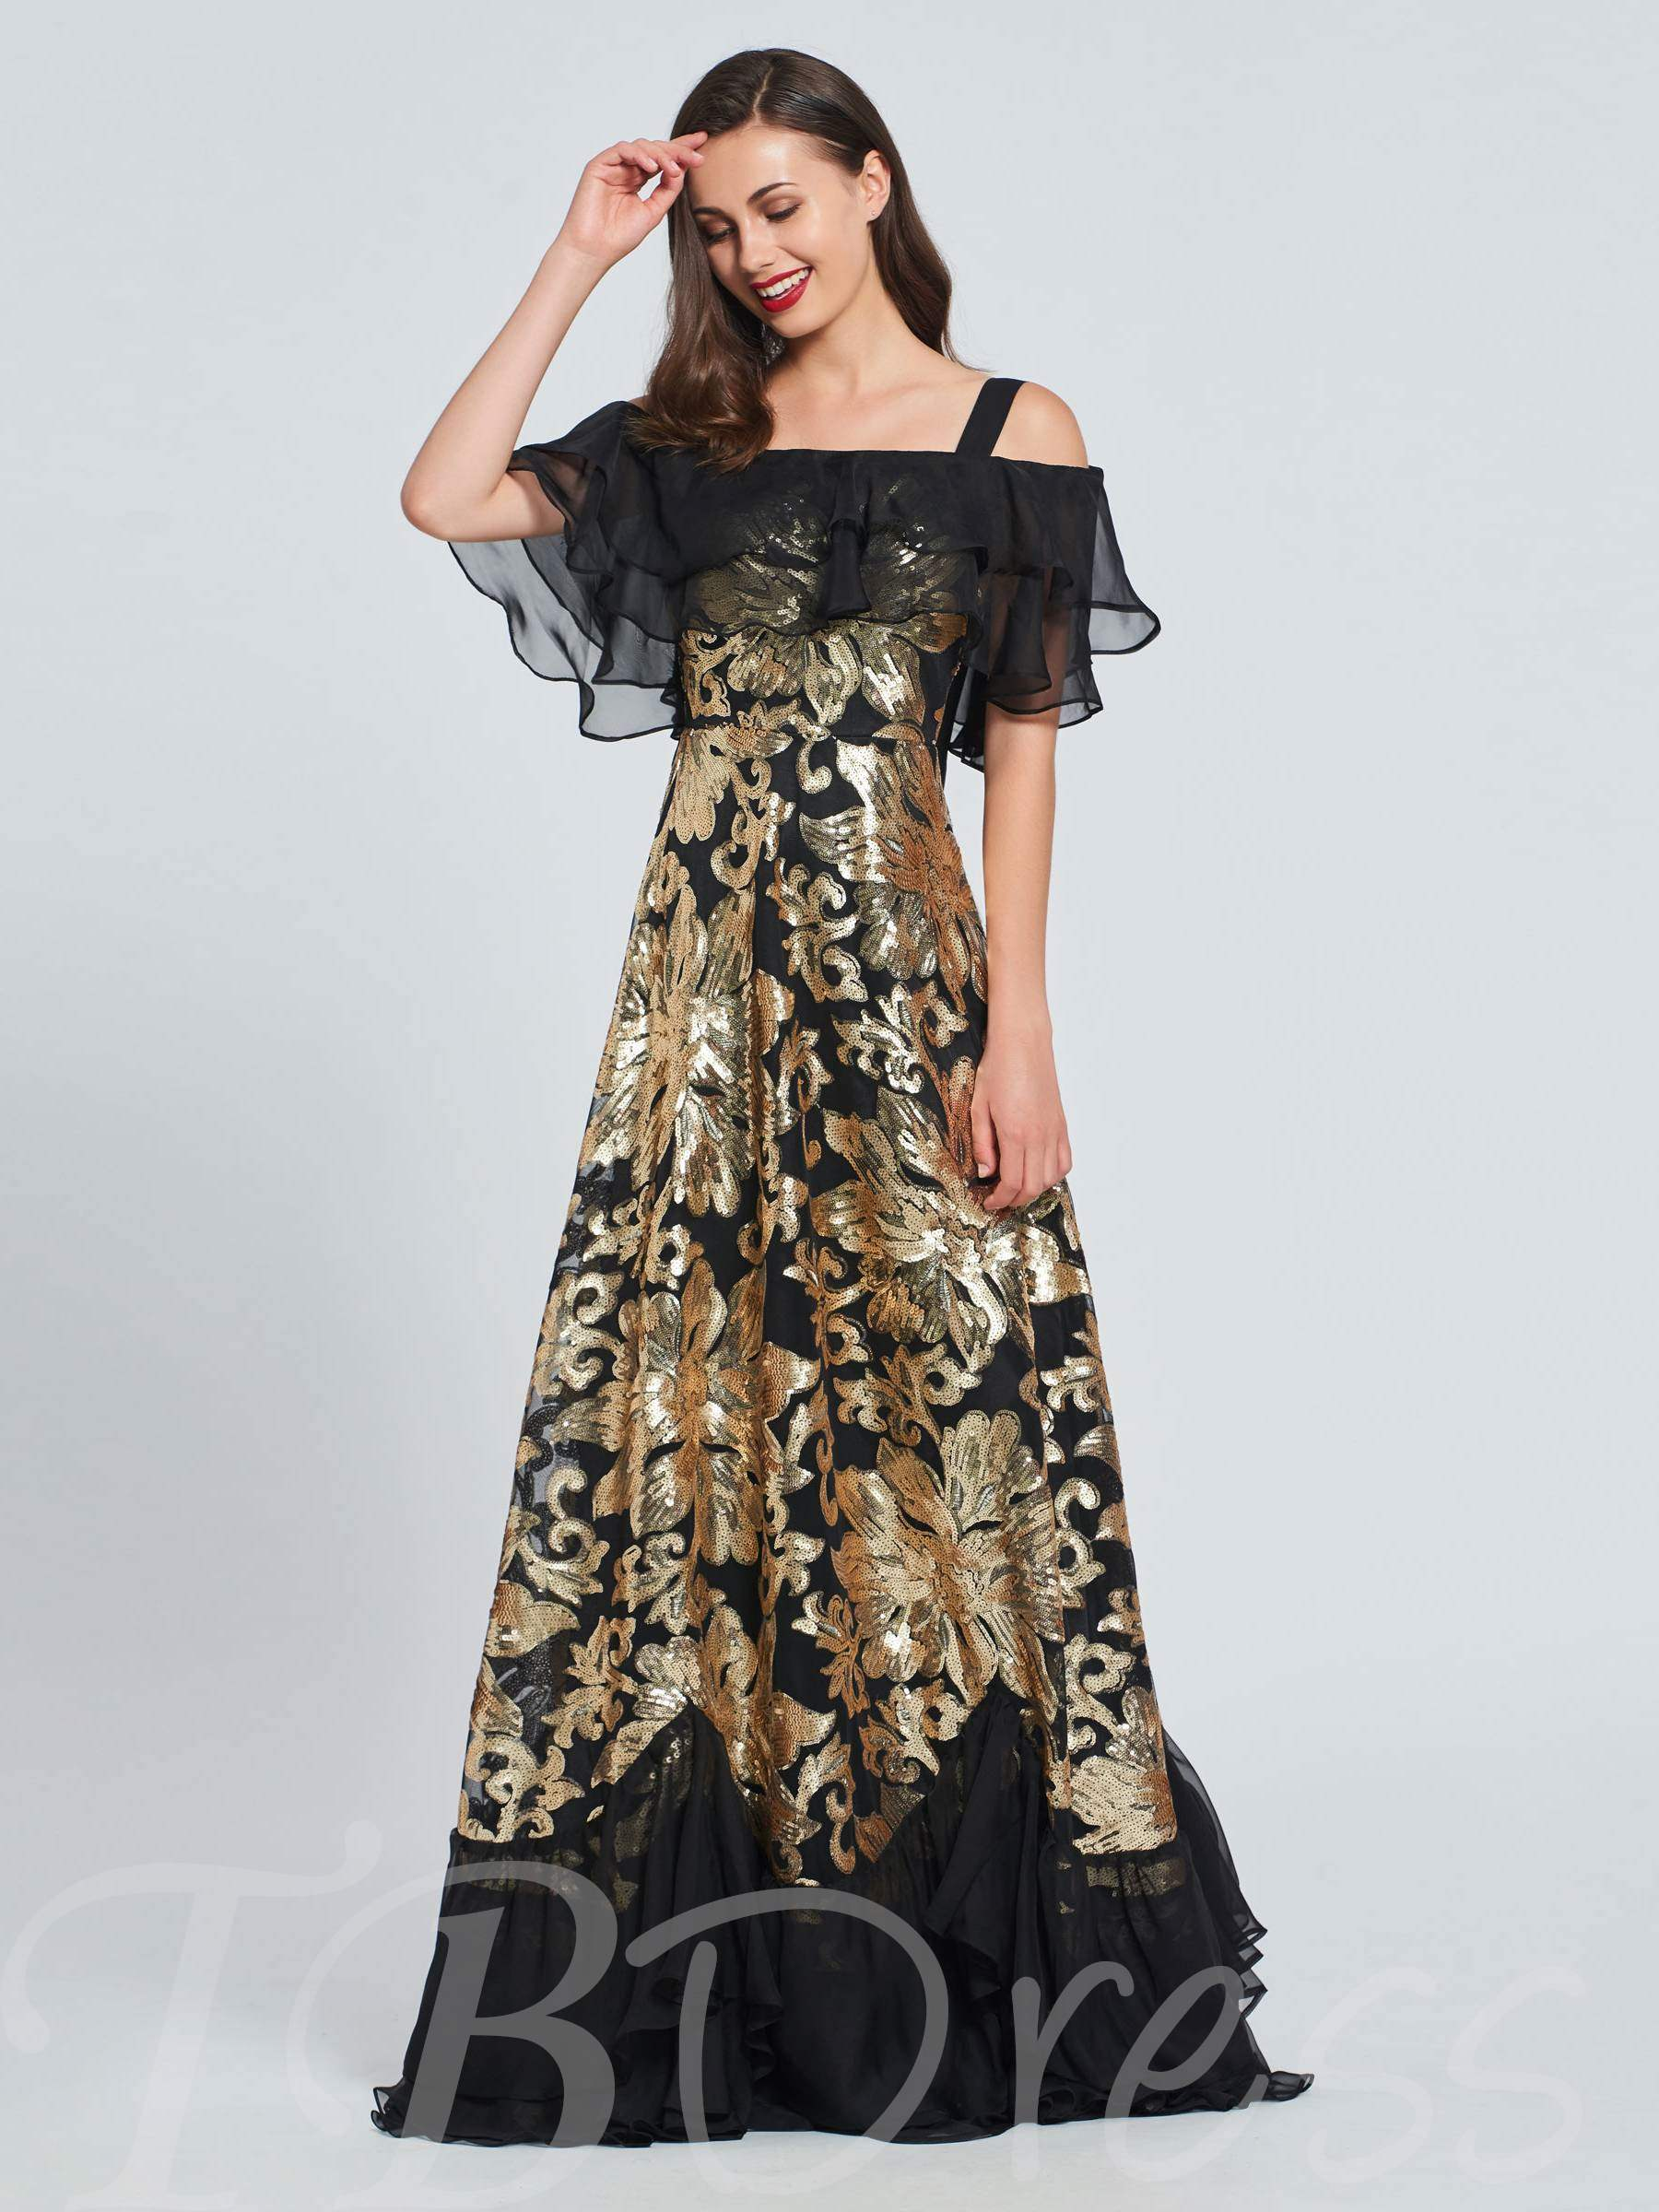 Buy A-Line Ruched Sequins Open Shoulder Prom Dress, Spring,Summer,Fall,Winter, 13396430 for $168.99 in TBDress store